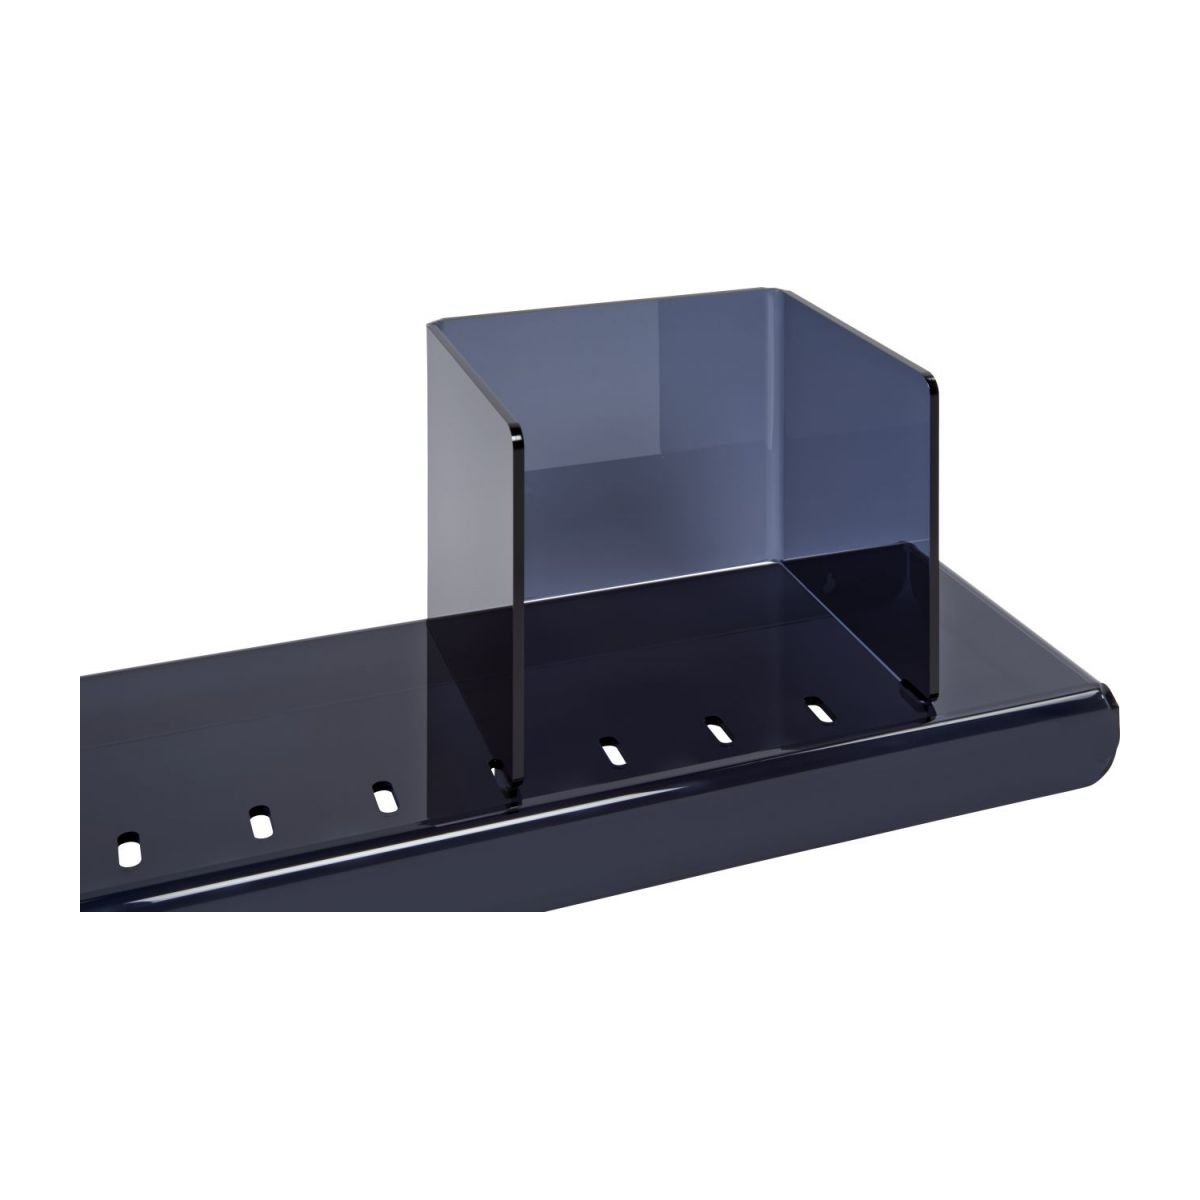 Shelf  made of acrylic, black n°4